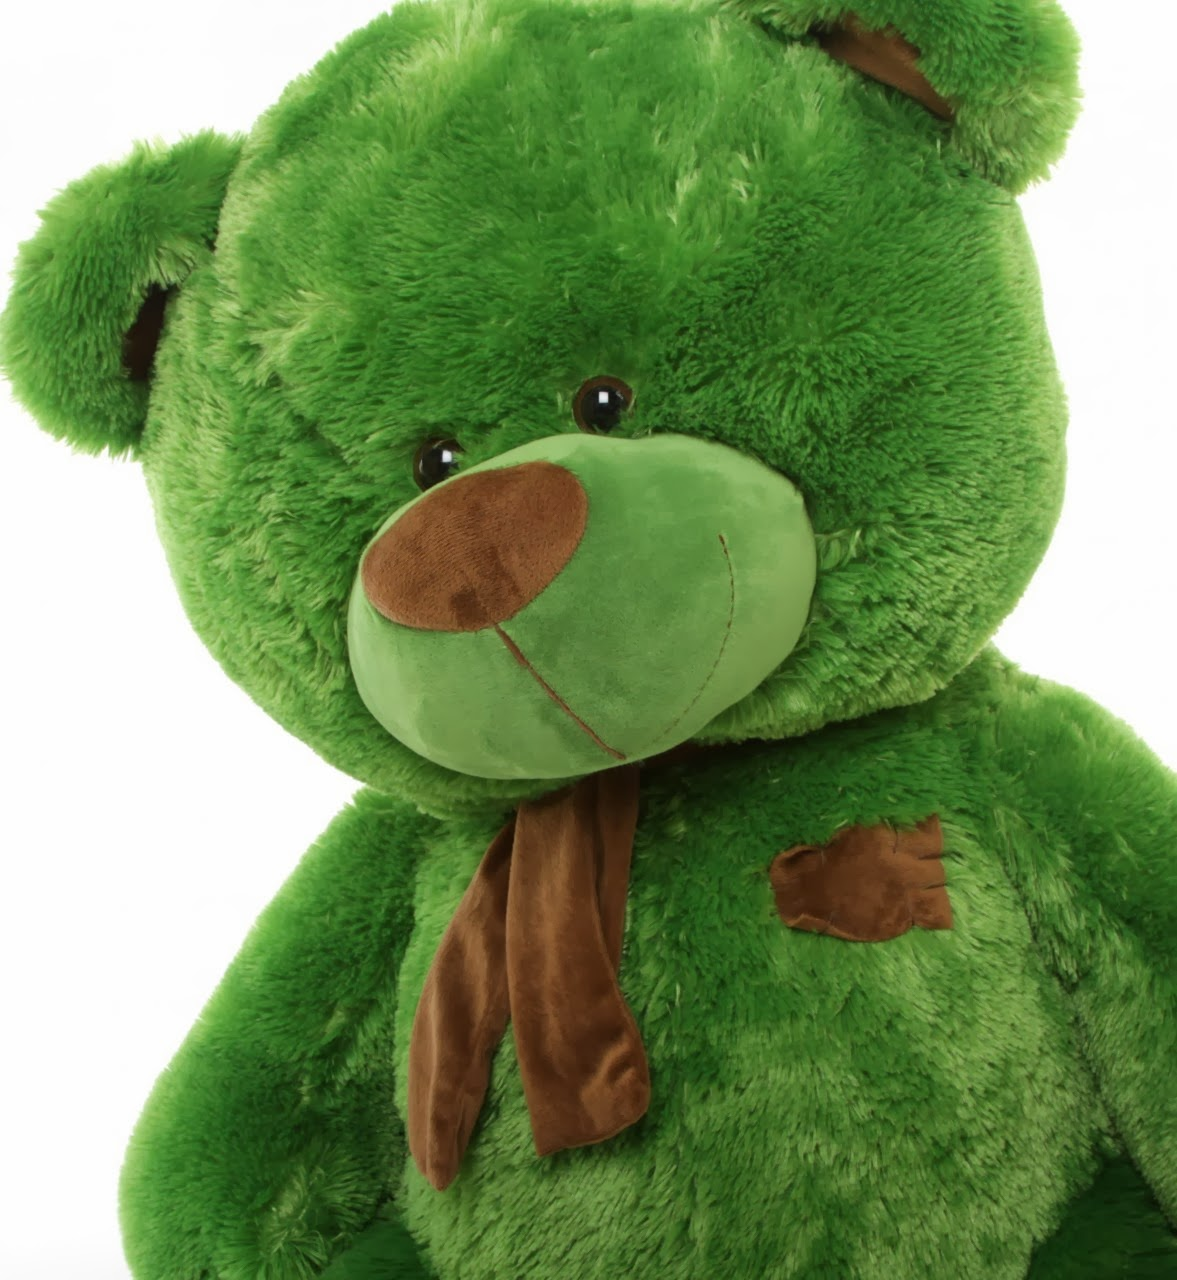 Meet Willy Shags, 45in big green teddy bear